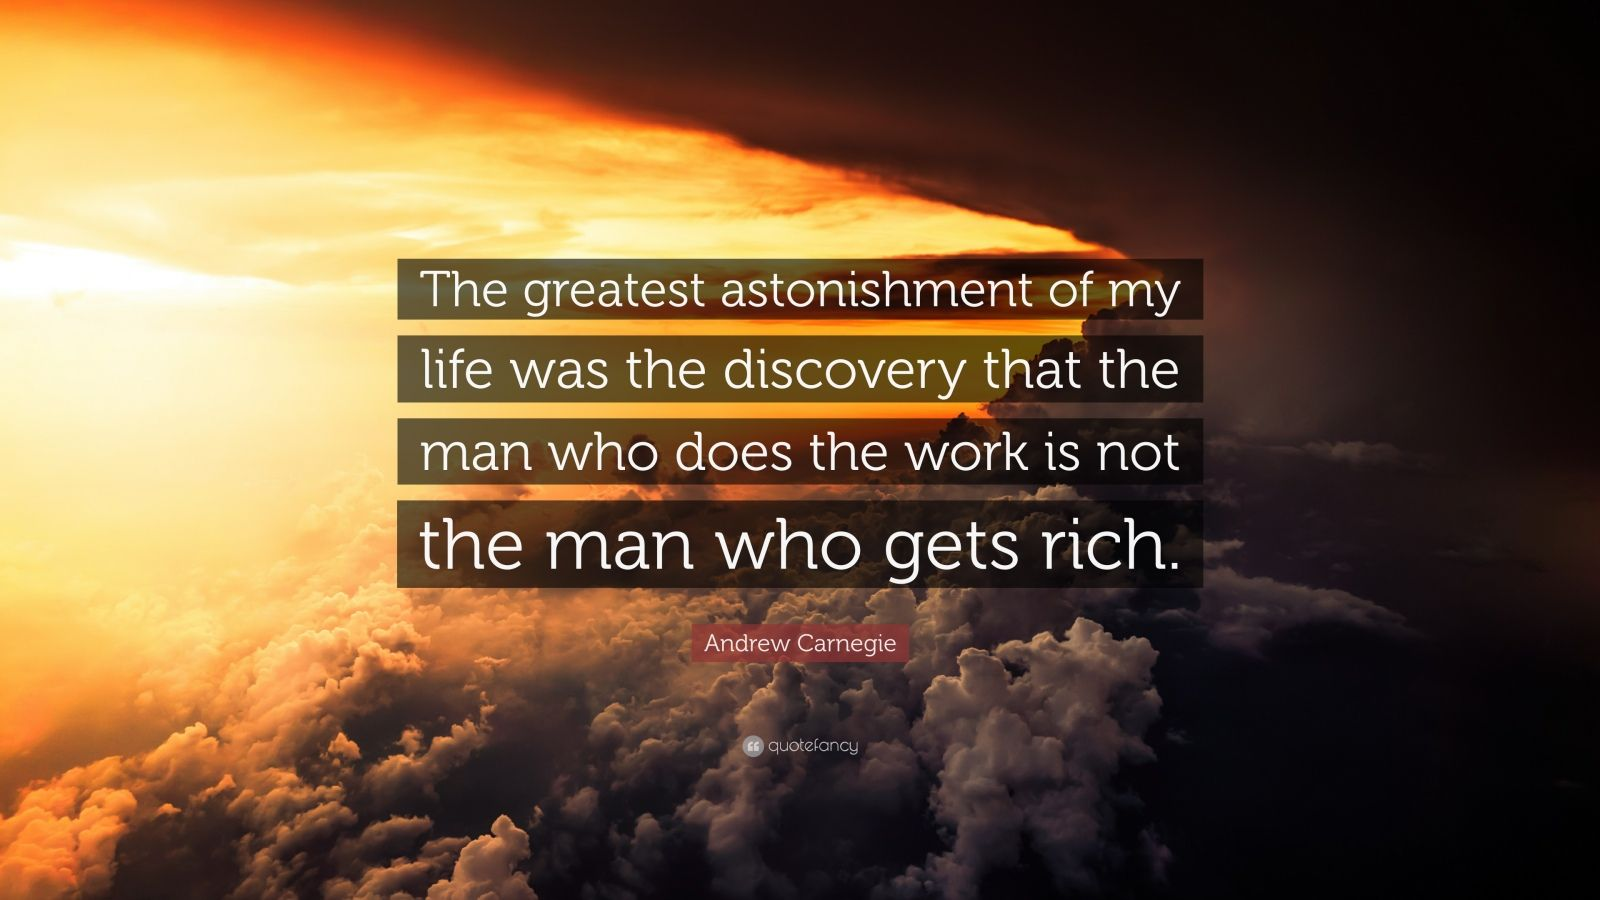 """Andrew Carnegie Quote: """"The greatest astonishment of my life was the discovery that the man who does the work is not the man who gets rich."""""""